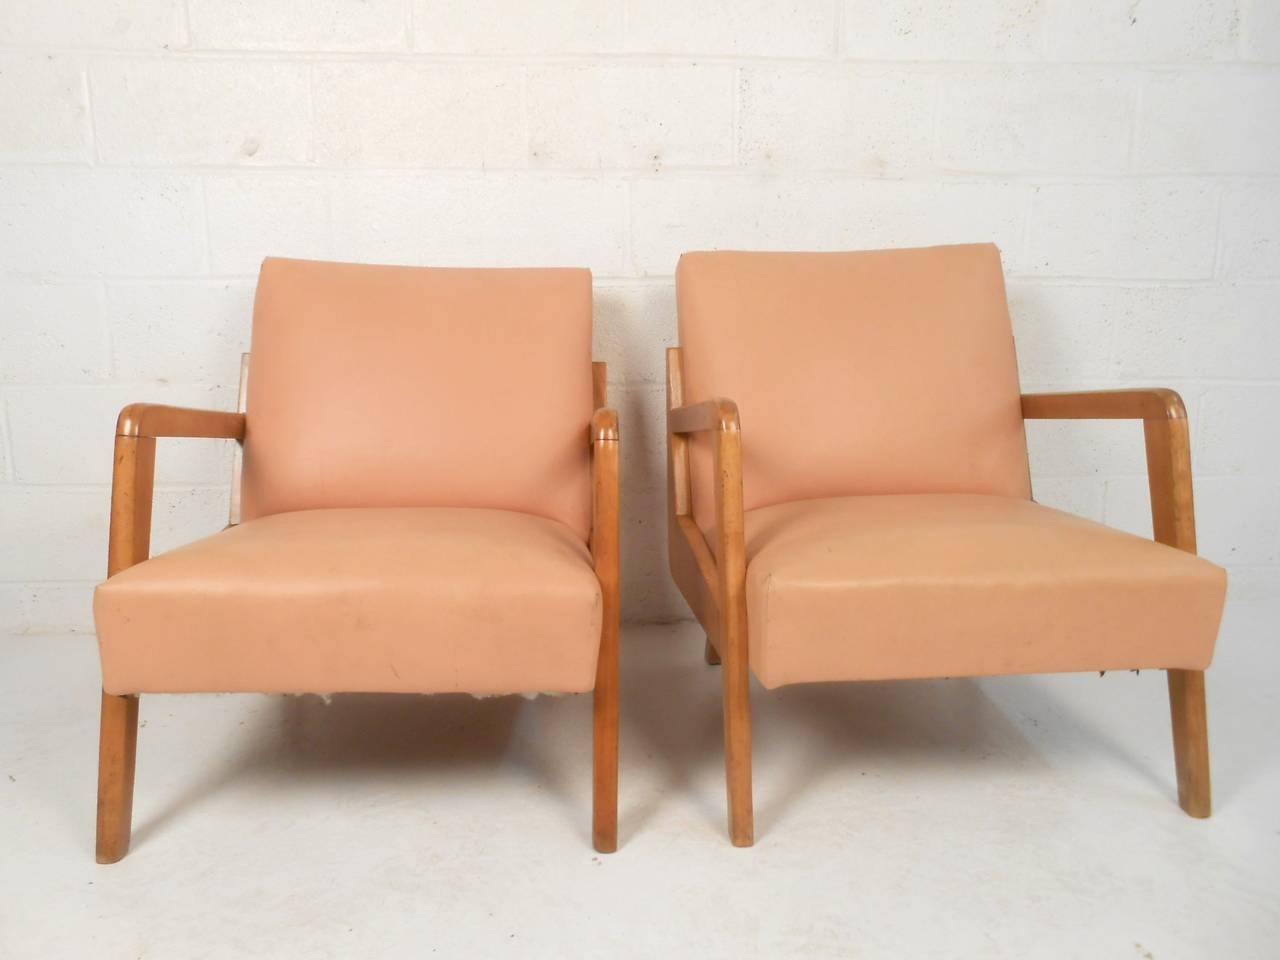 Mid century modern sculpted armchairs for sale at 1stdibs for Mid century modern armchairs